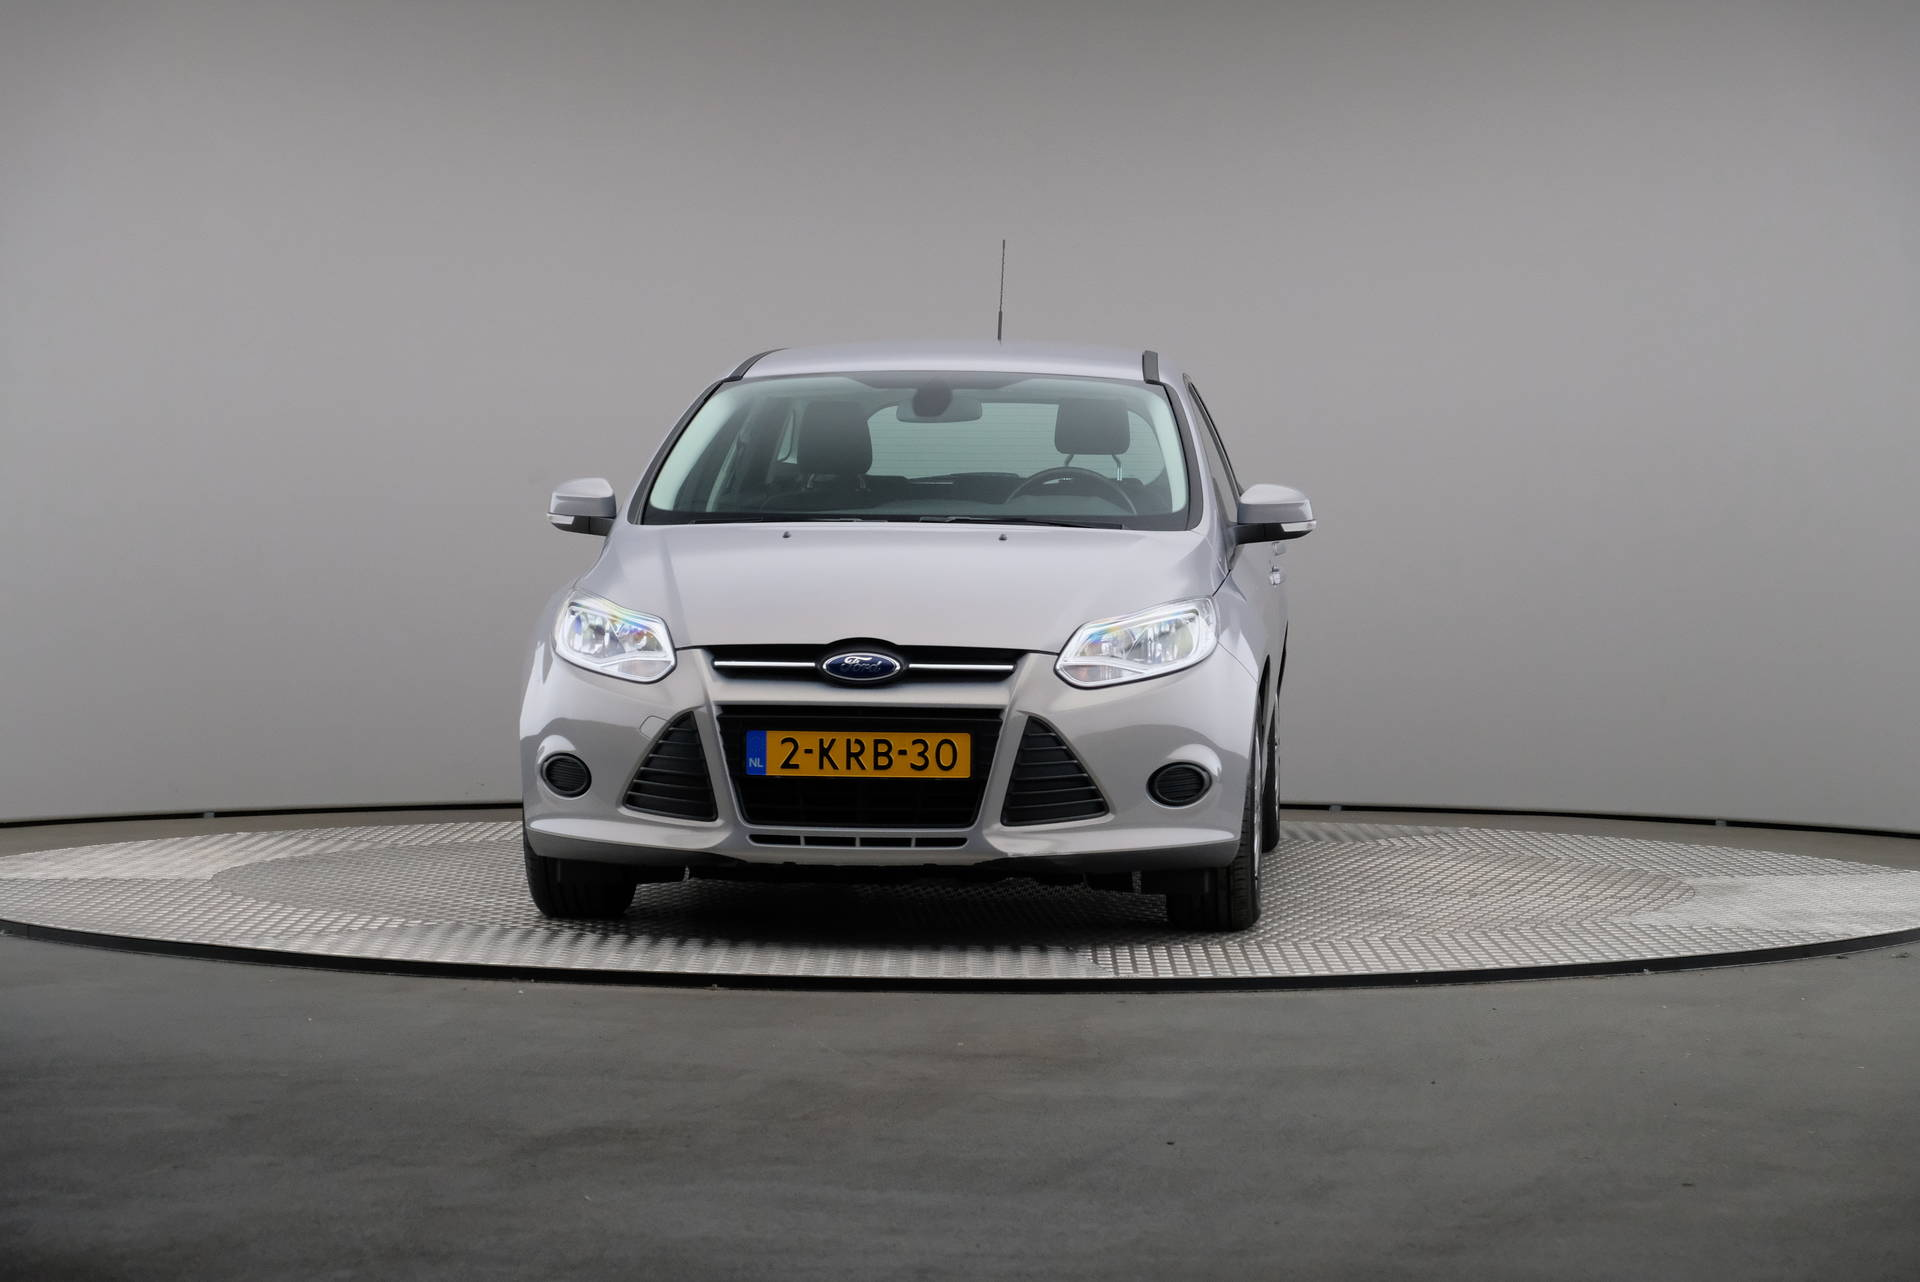 Ford Focus Wagon 1.6 TDCi ECOnetic Lease Trend, Navigatie, 360-image33